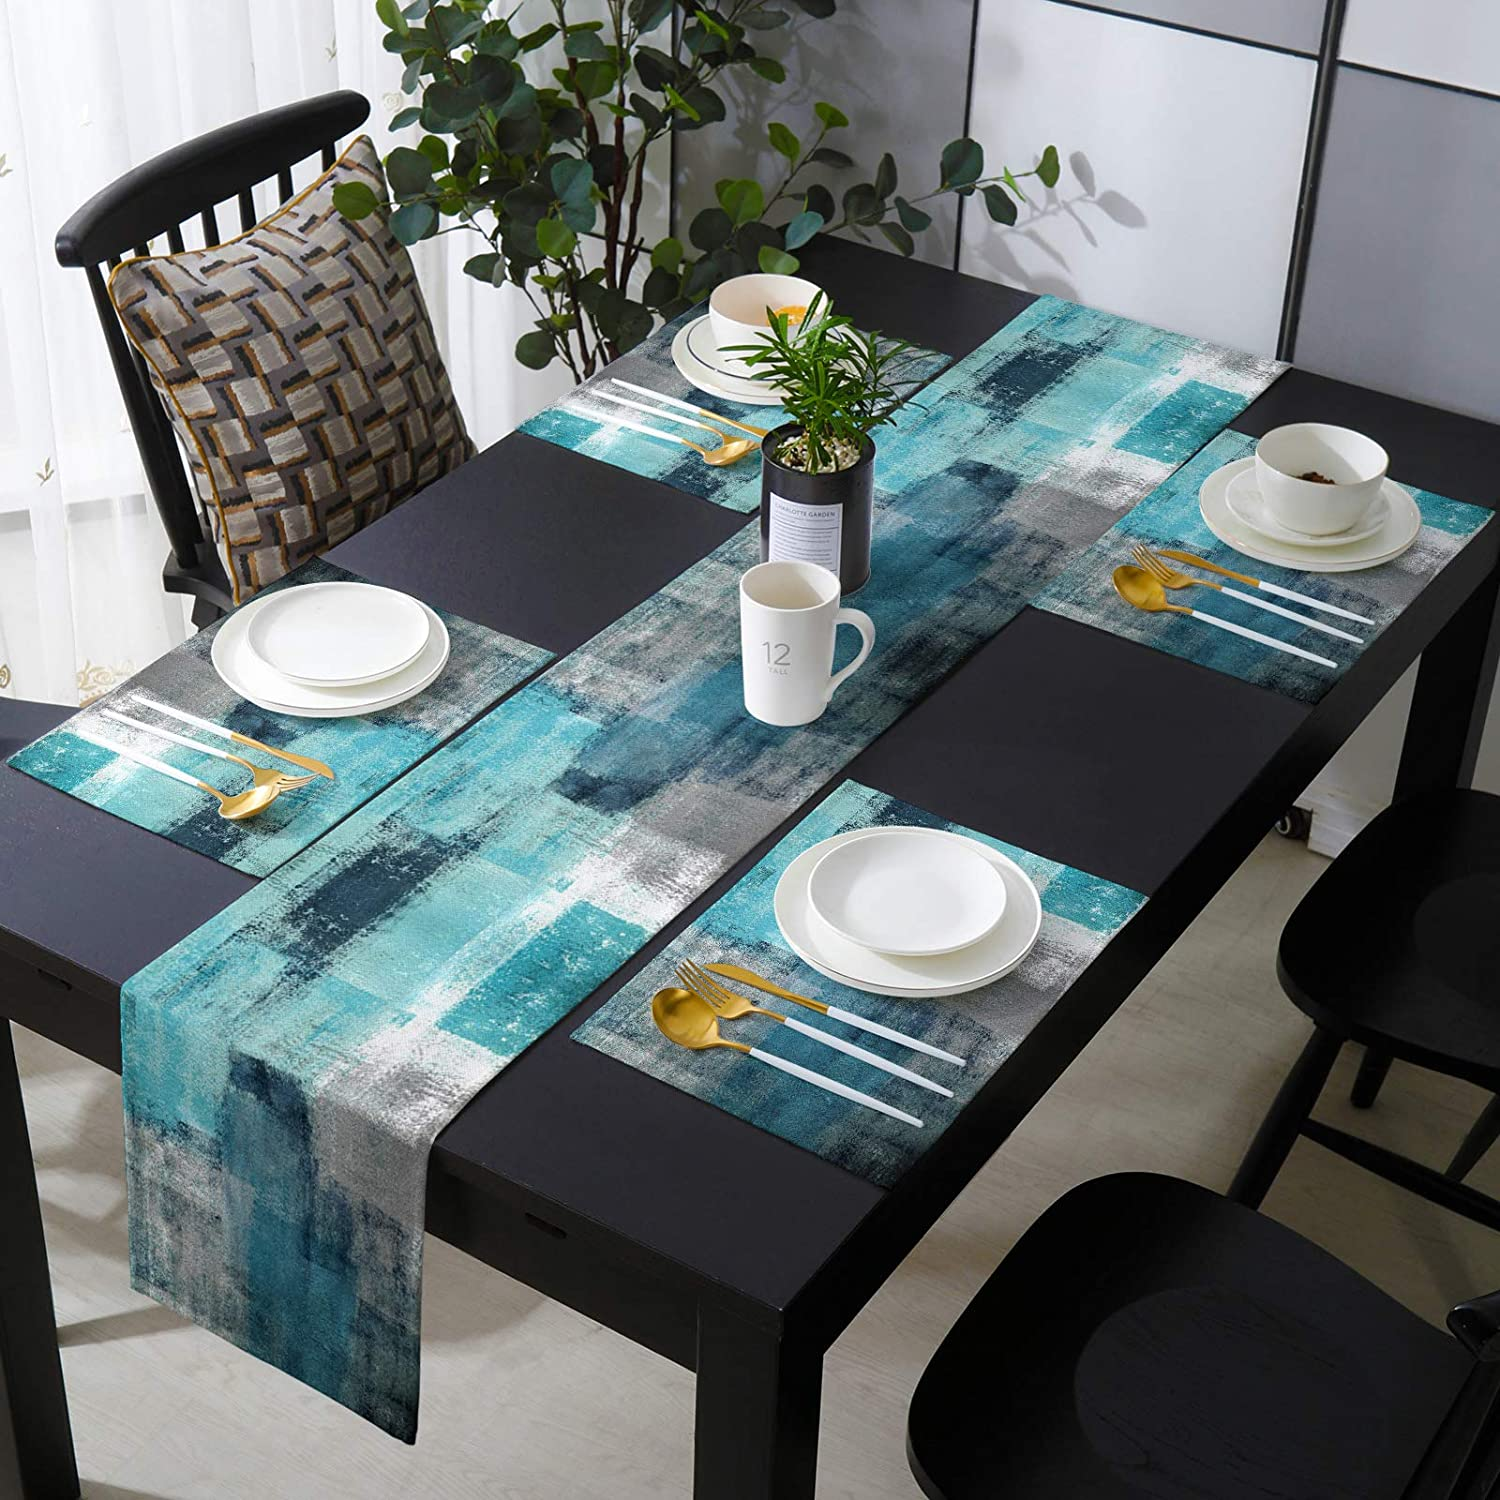 Farmhouse Baltimore Mall Placemats with Burlap Animer and price revision Table Turq Runner Long inches 90